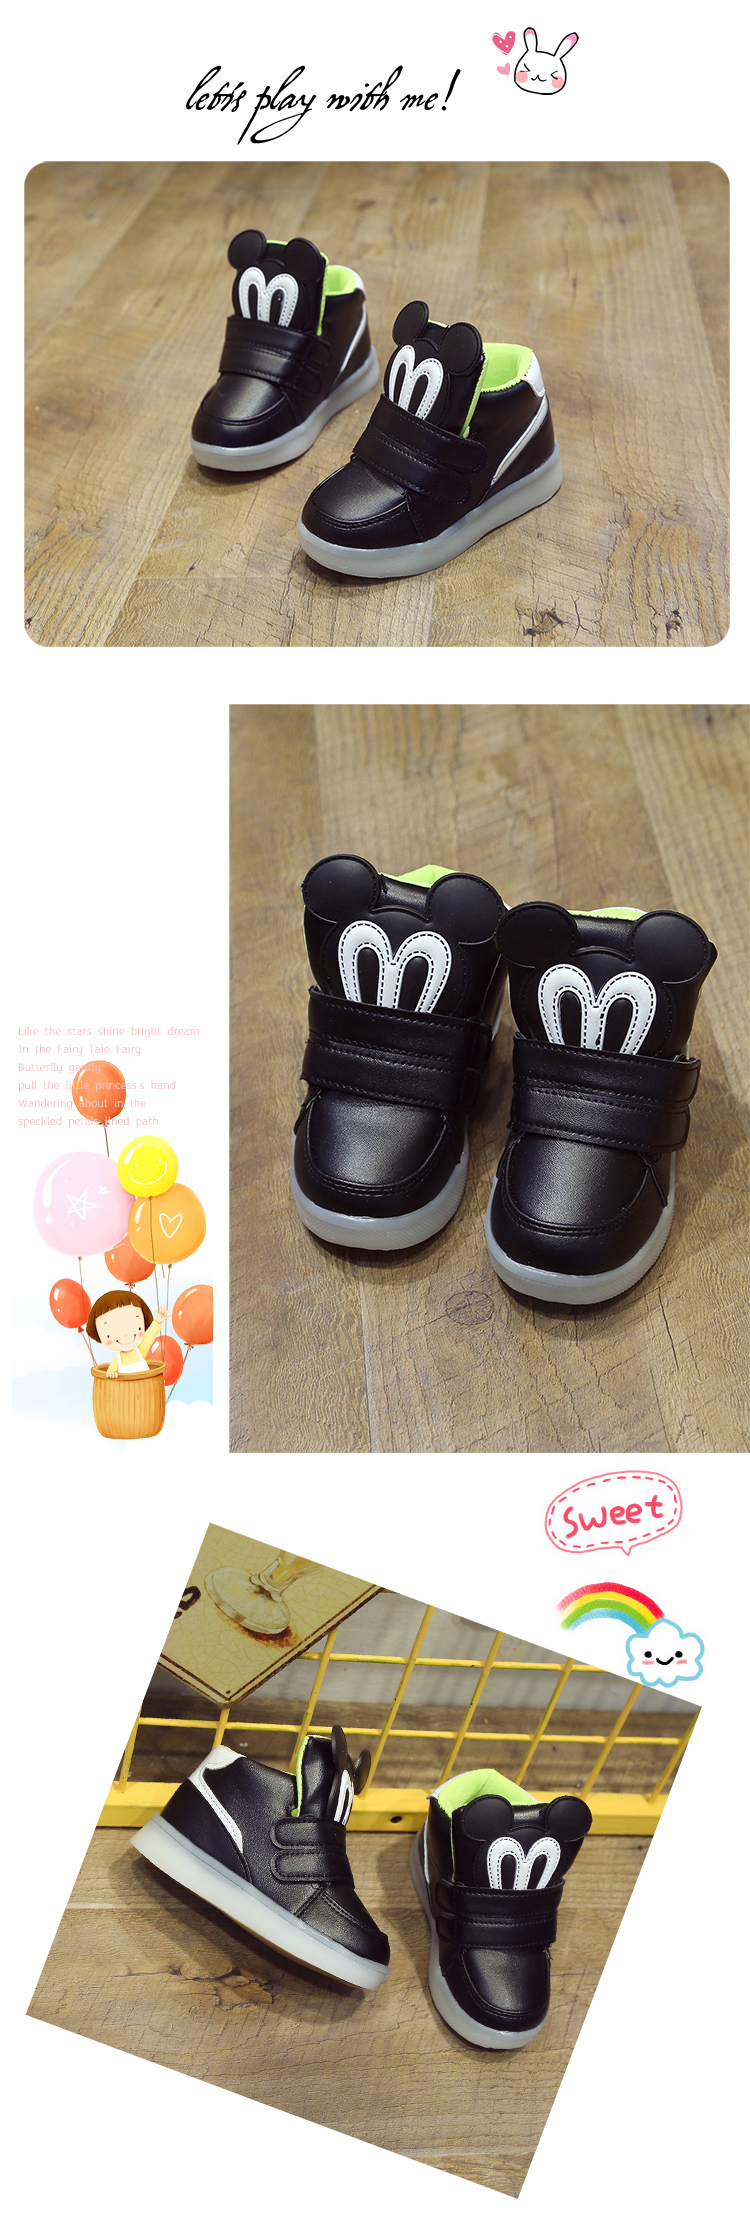 5105fca12a09d Children Shoes With Light Led Boys Sneakers 2017 New Spring Cartoon Lighted  Sport Fashion Girls Shoes Chaussure Led Enfant - us299